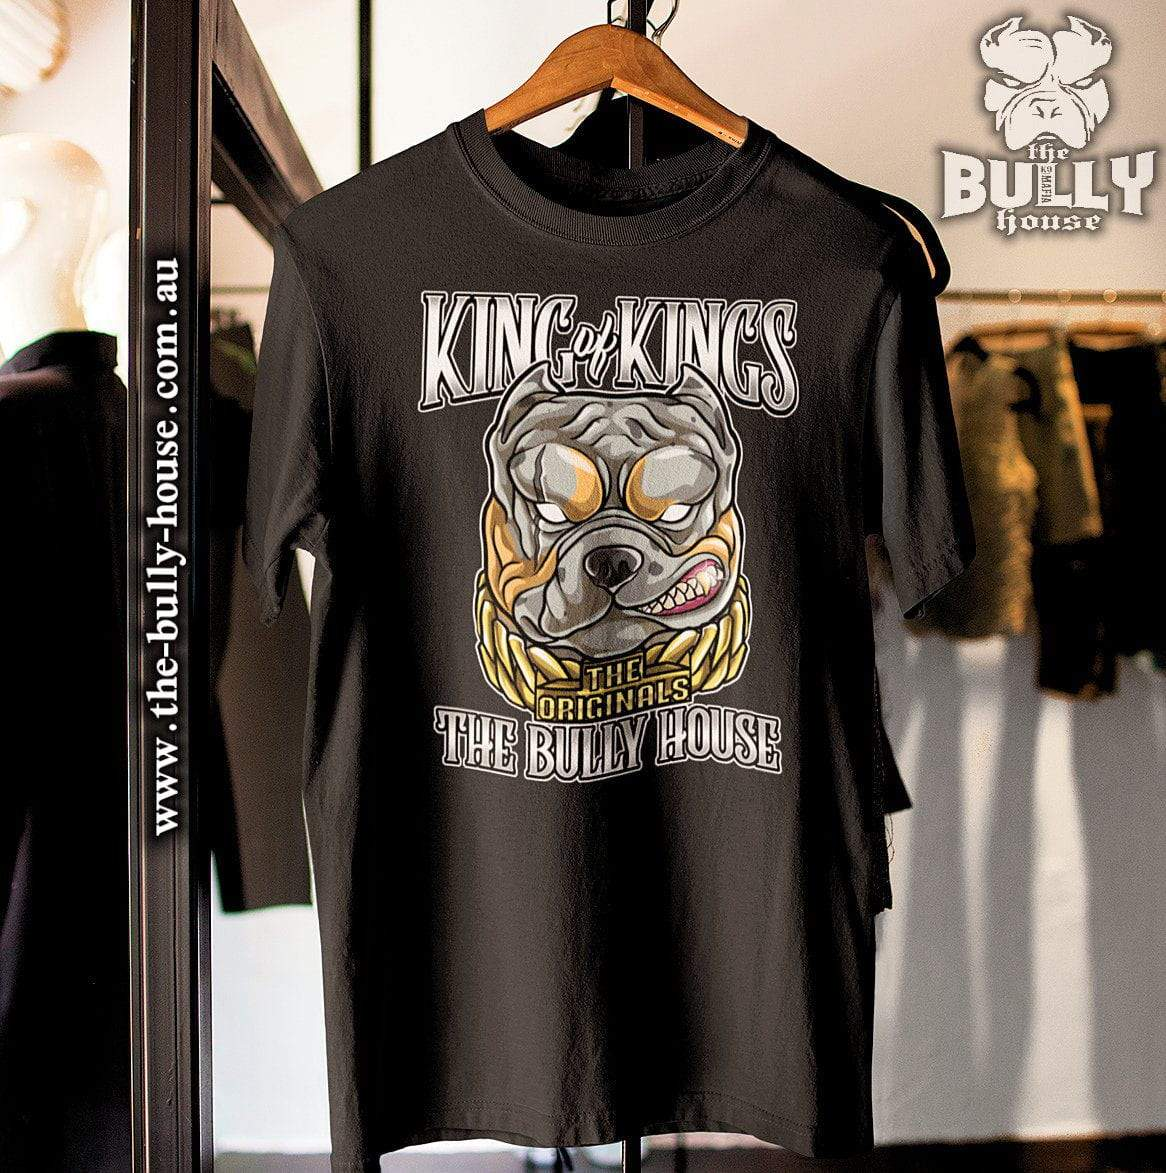 KING OF KINGS - T Shirt - White Edition - Black T-MENS or UNISEX